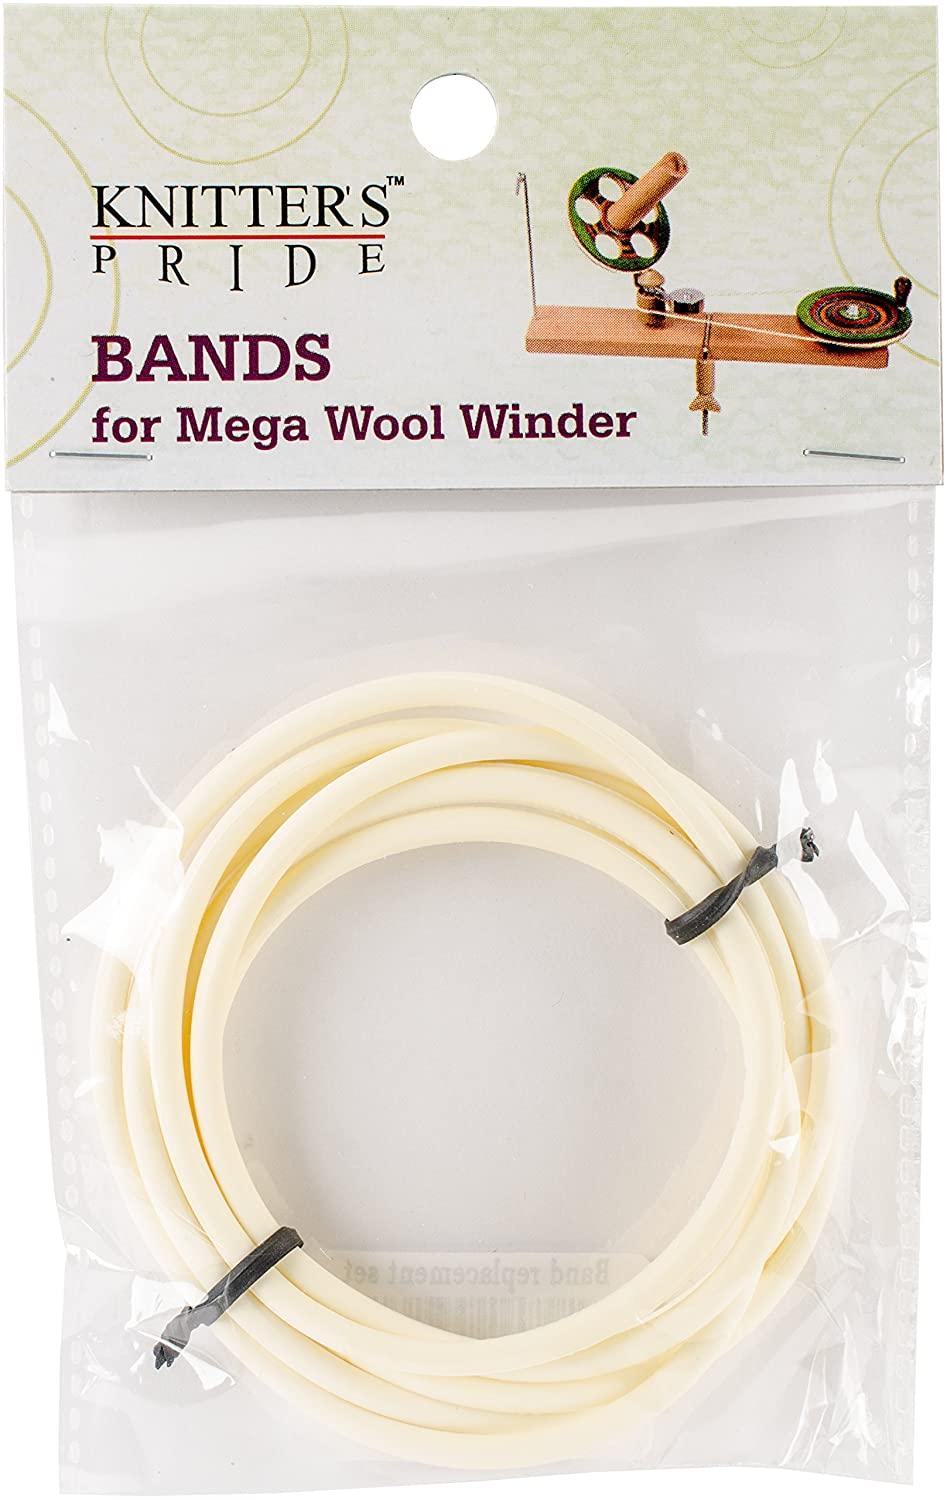 Knitter's Pride Band Replacement Set For Ball Winder- Knitter' s Pride KP800375